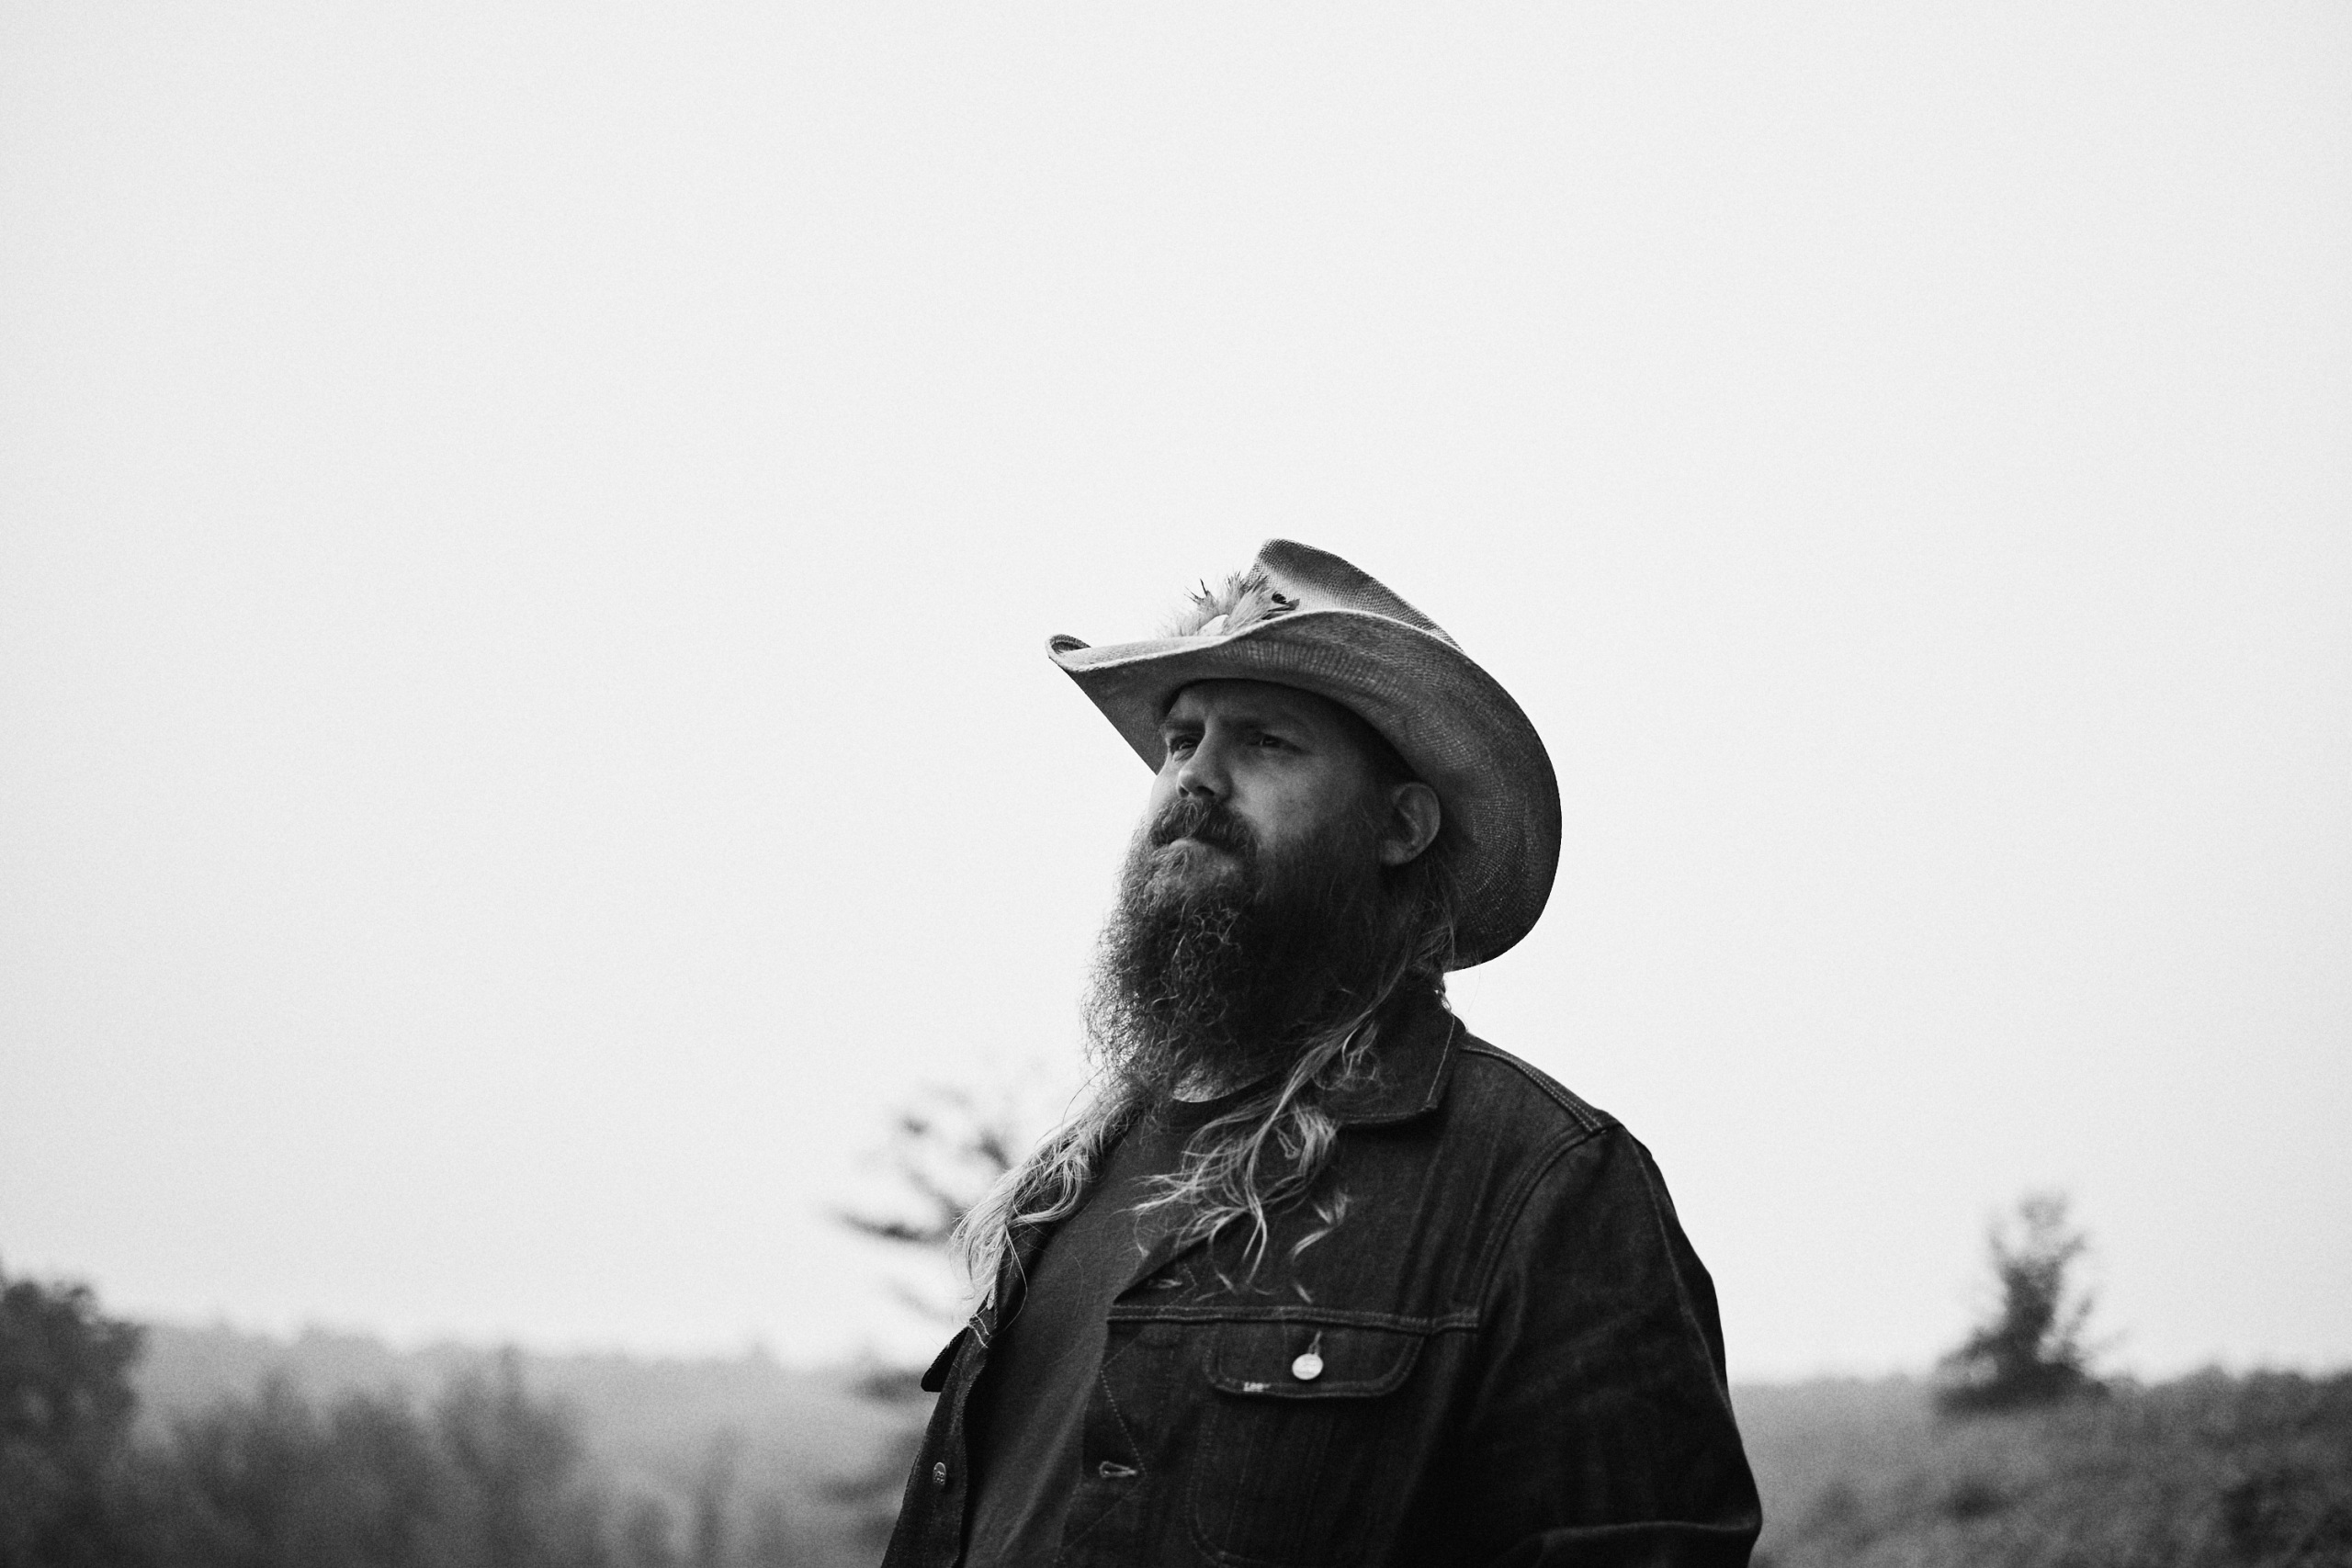 CHRIS STAPLETON'S STARTING OVER DEBUTS AT #1 ON BILLBOARD COUNTRY CHART.